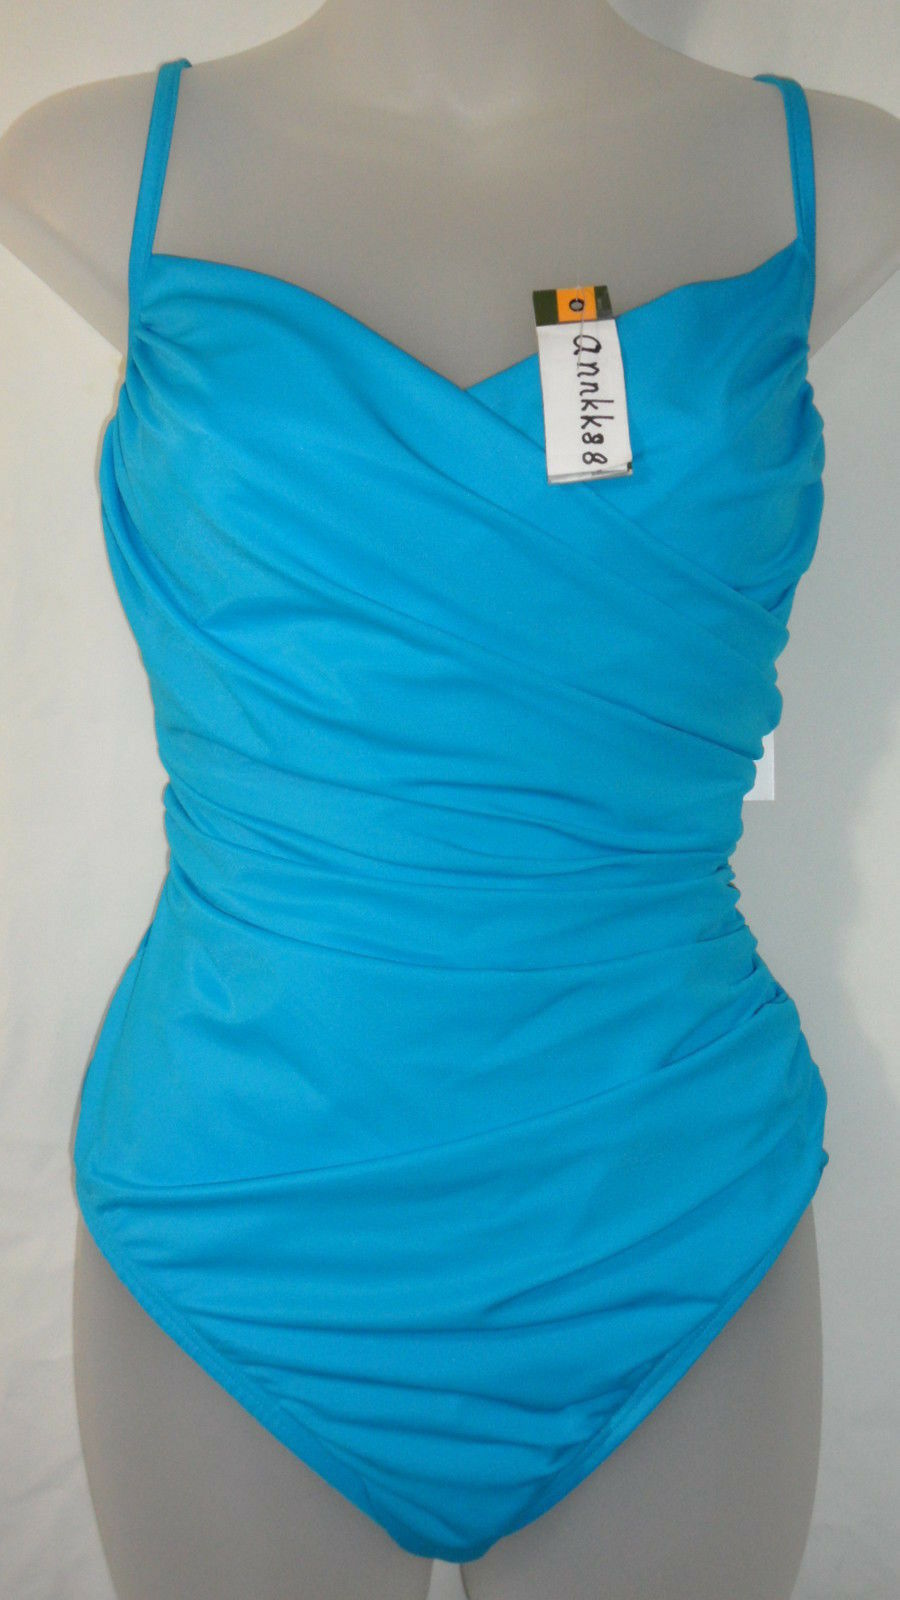 NWT Miraclesuit Womens Captiva 1-PC One Piece Swimsuit bluee 16 Retail  134